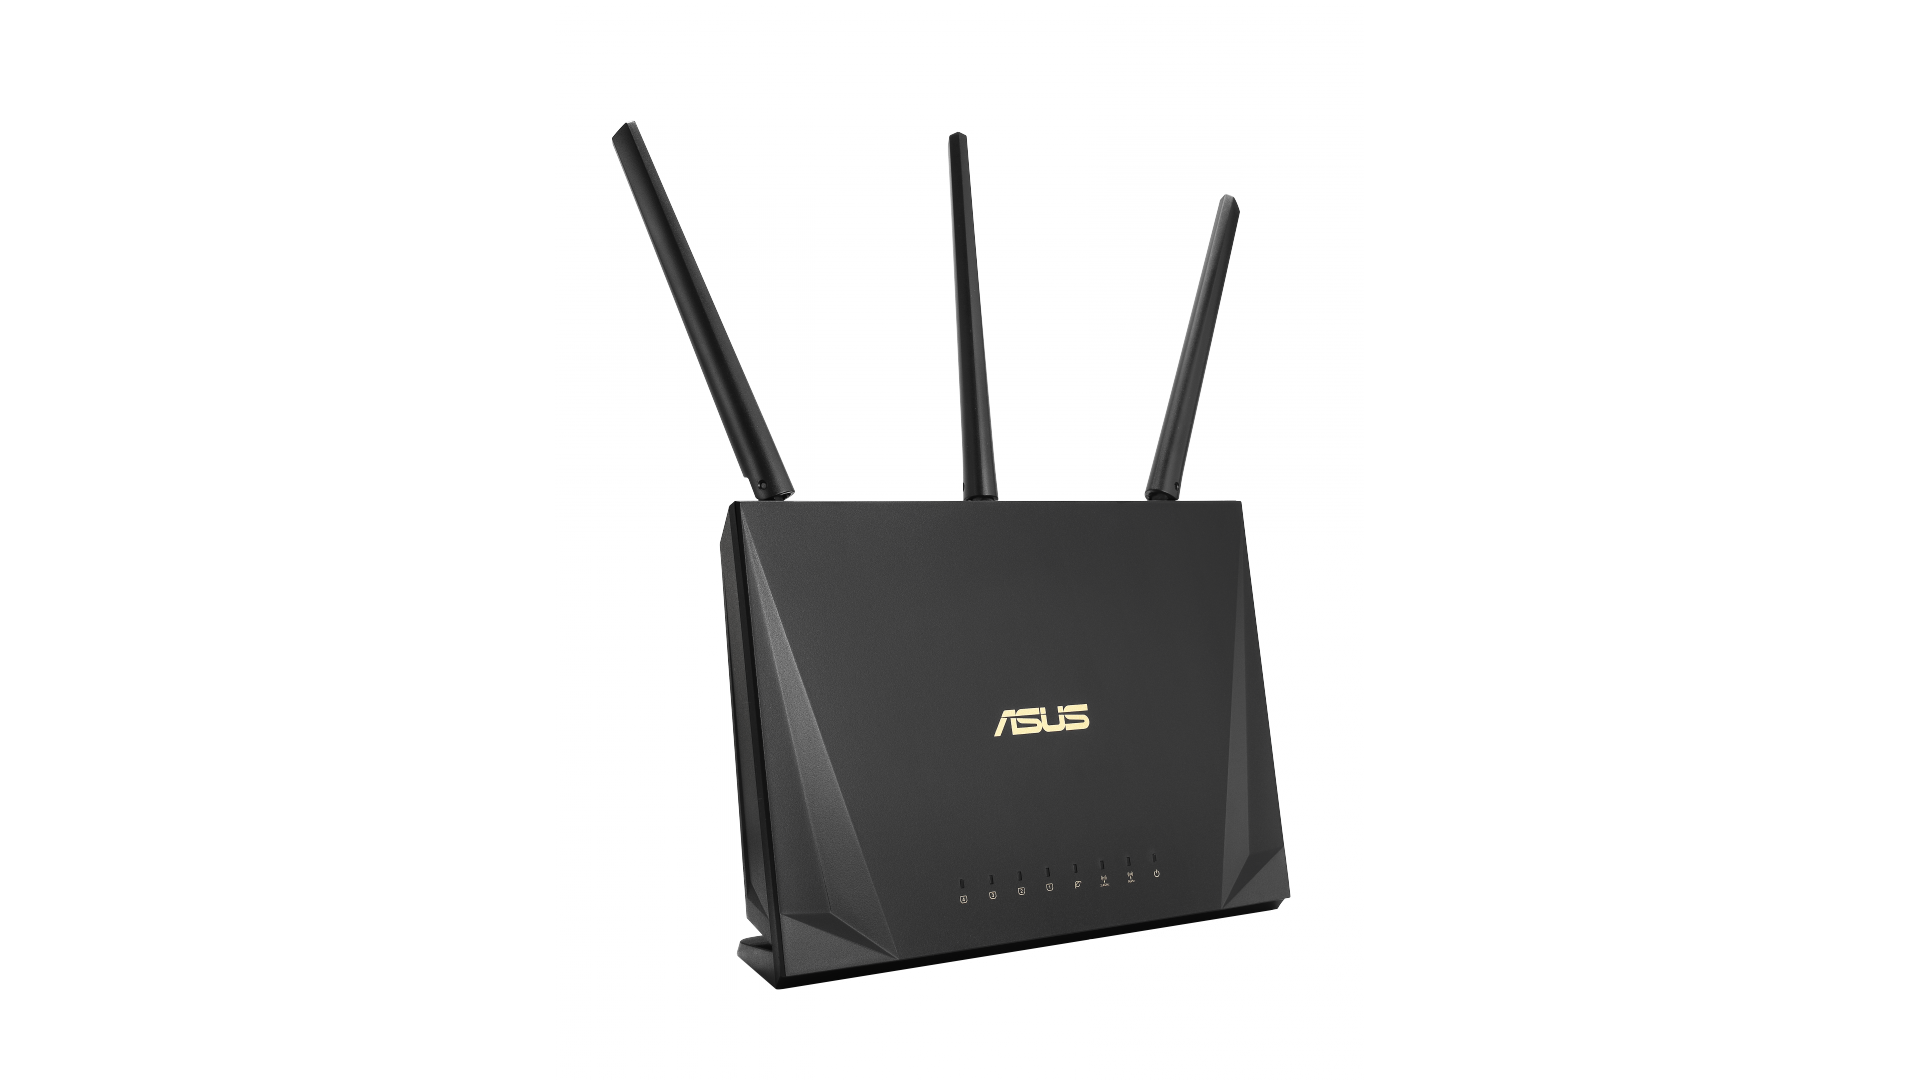 Image of Asus RT-AC85P Broadband AC Router - High Performance